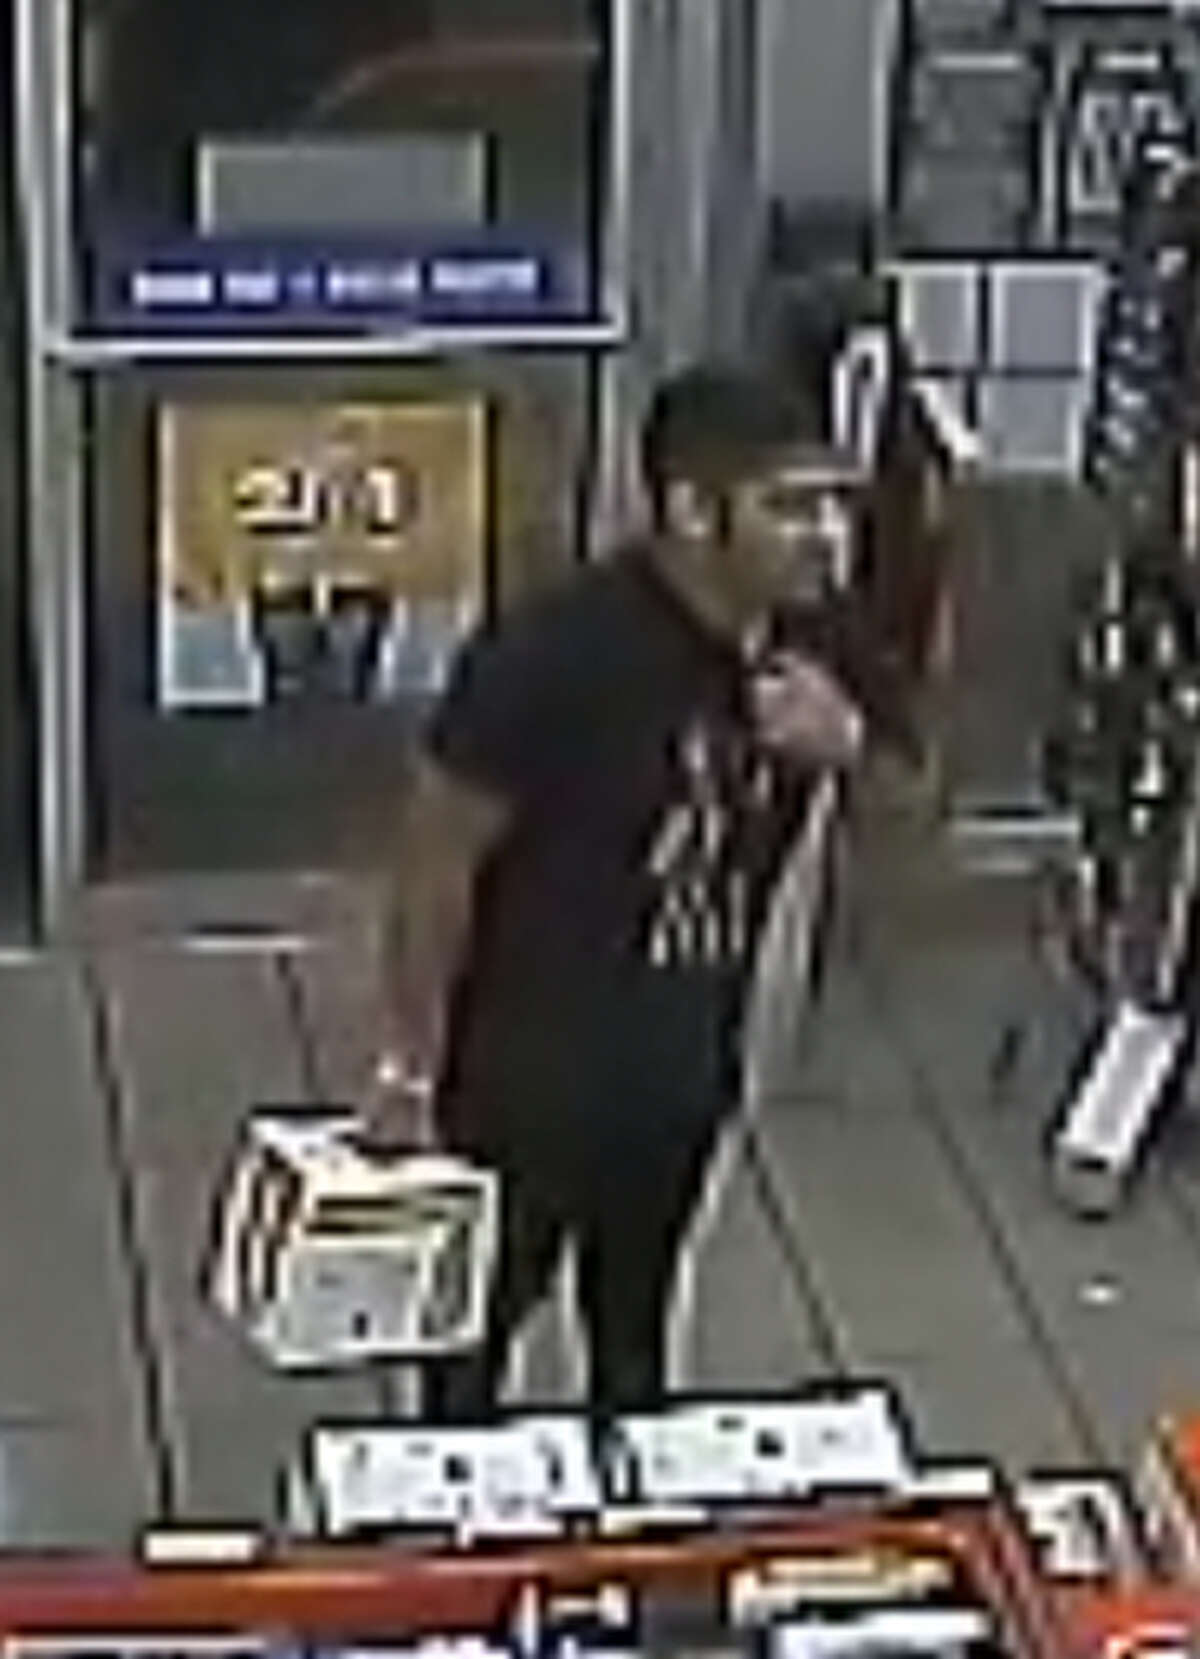 Authorities said this man allegedly assaulted a store clerk on Mines Road after the clerk refused to provide service for not wearing a facemask.